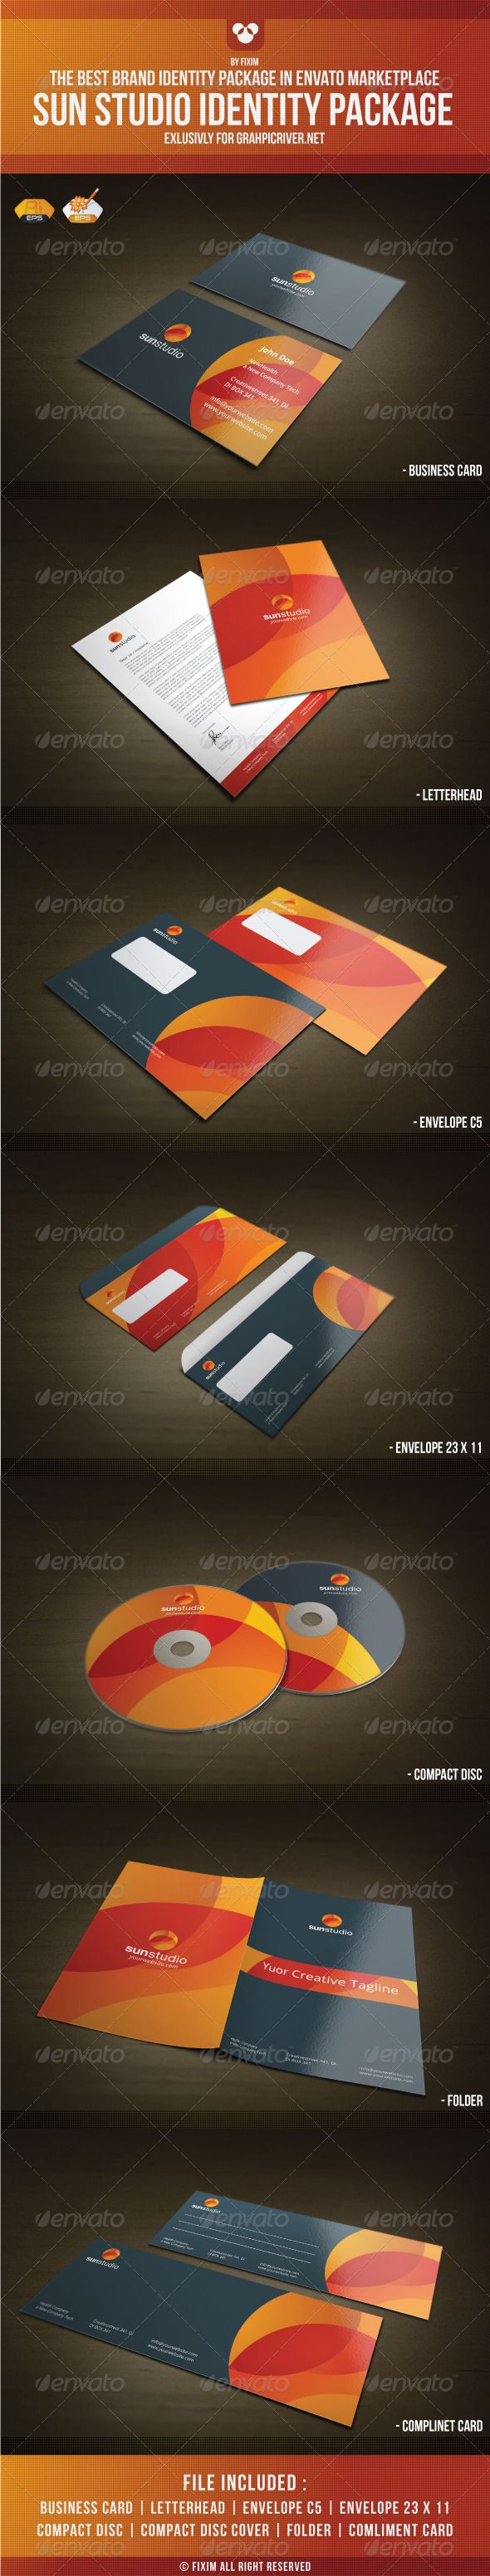 Sun Studio Identity Package #GraphicRiver What Do You Get? Vector Logo Business Card (3.5×2) Letterhead (DIN A4) Compact Dics (Regular CD/DVD Size) Compact Dics Cover Envelope C5 (DIN C5) Envelope 23 X 11 .5 Compliment Card (Half DIN A5 ) Corporate folder (A3) Fully Editable Font used in all package its: Open Sans Download Here I'm ready for freelancer work.If u need any custom design please feel free to contact me in my personal e-mail. NOTE : Logo included in the file. Created: 11April12…